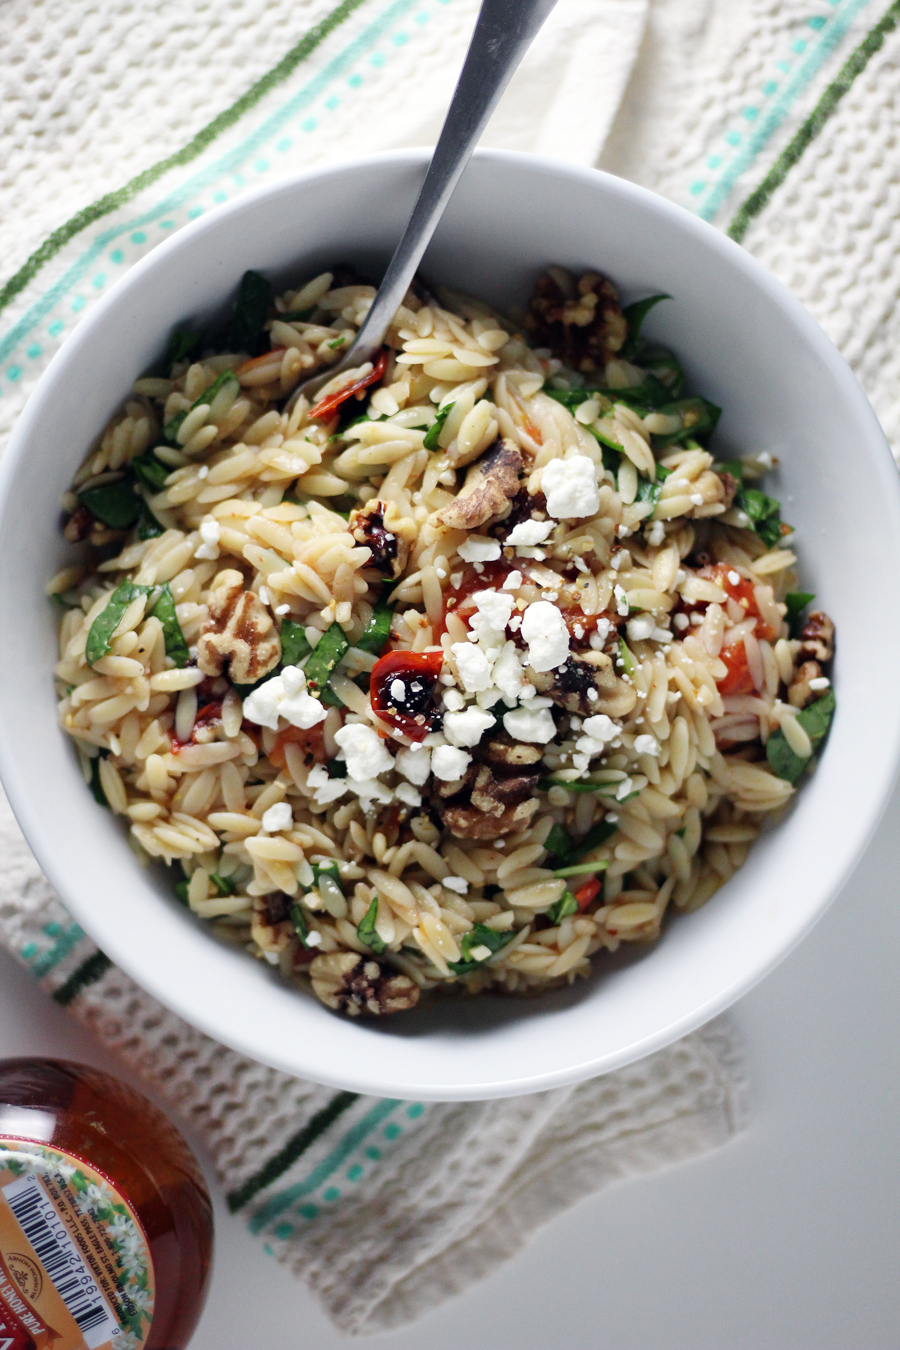 Toss the honey + lemon dressing with the orzo pasta, roasted tomatoes, spinach, walnuts and sprinkle with feta.